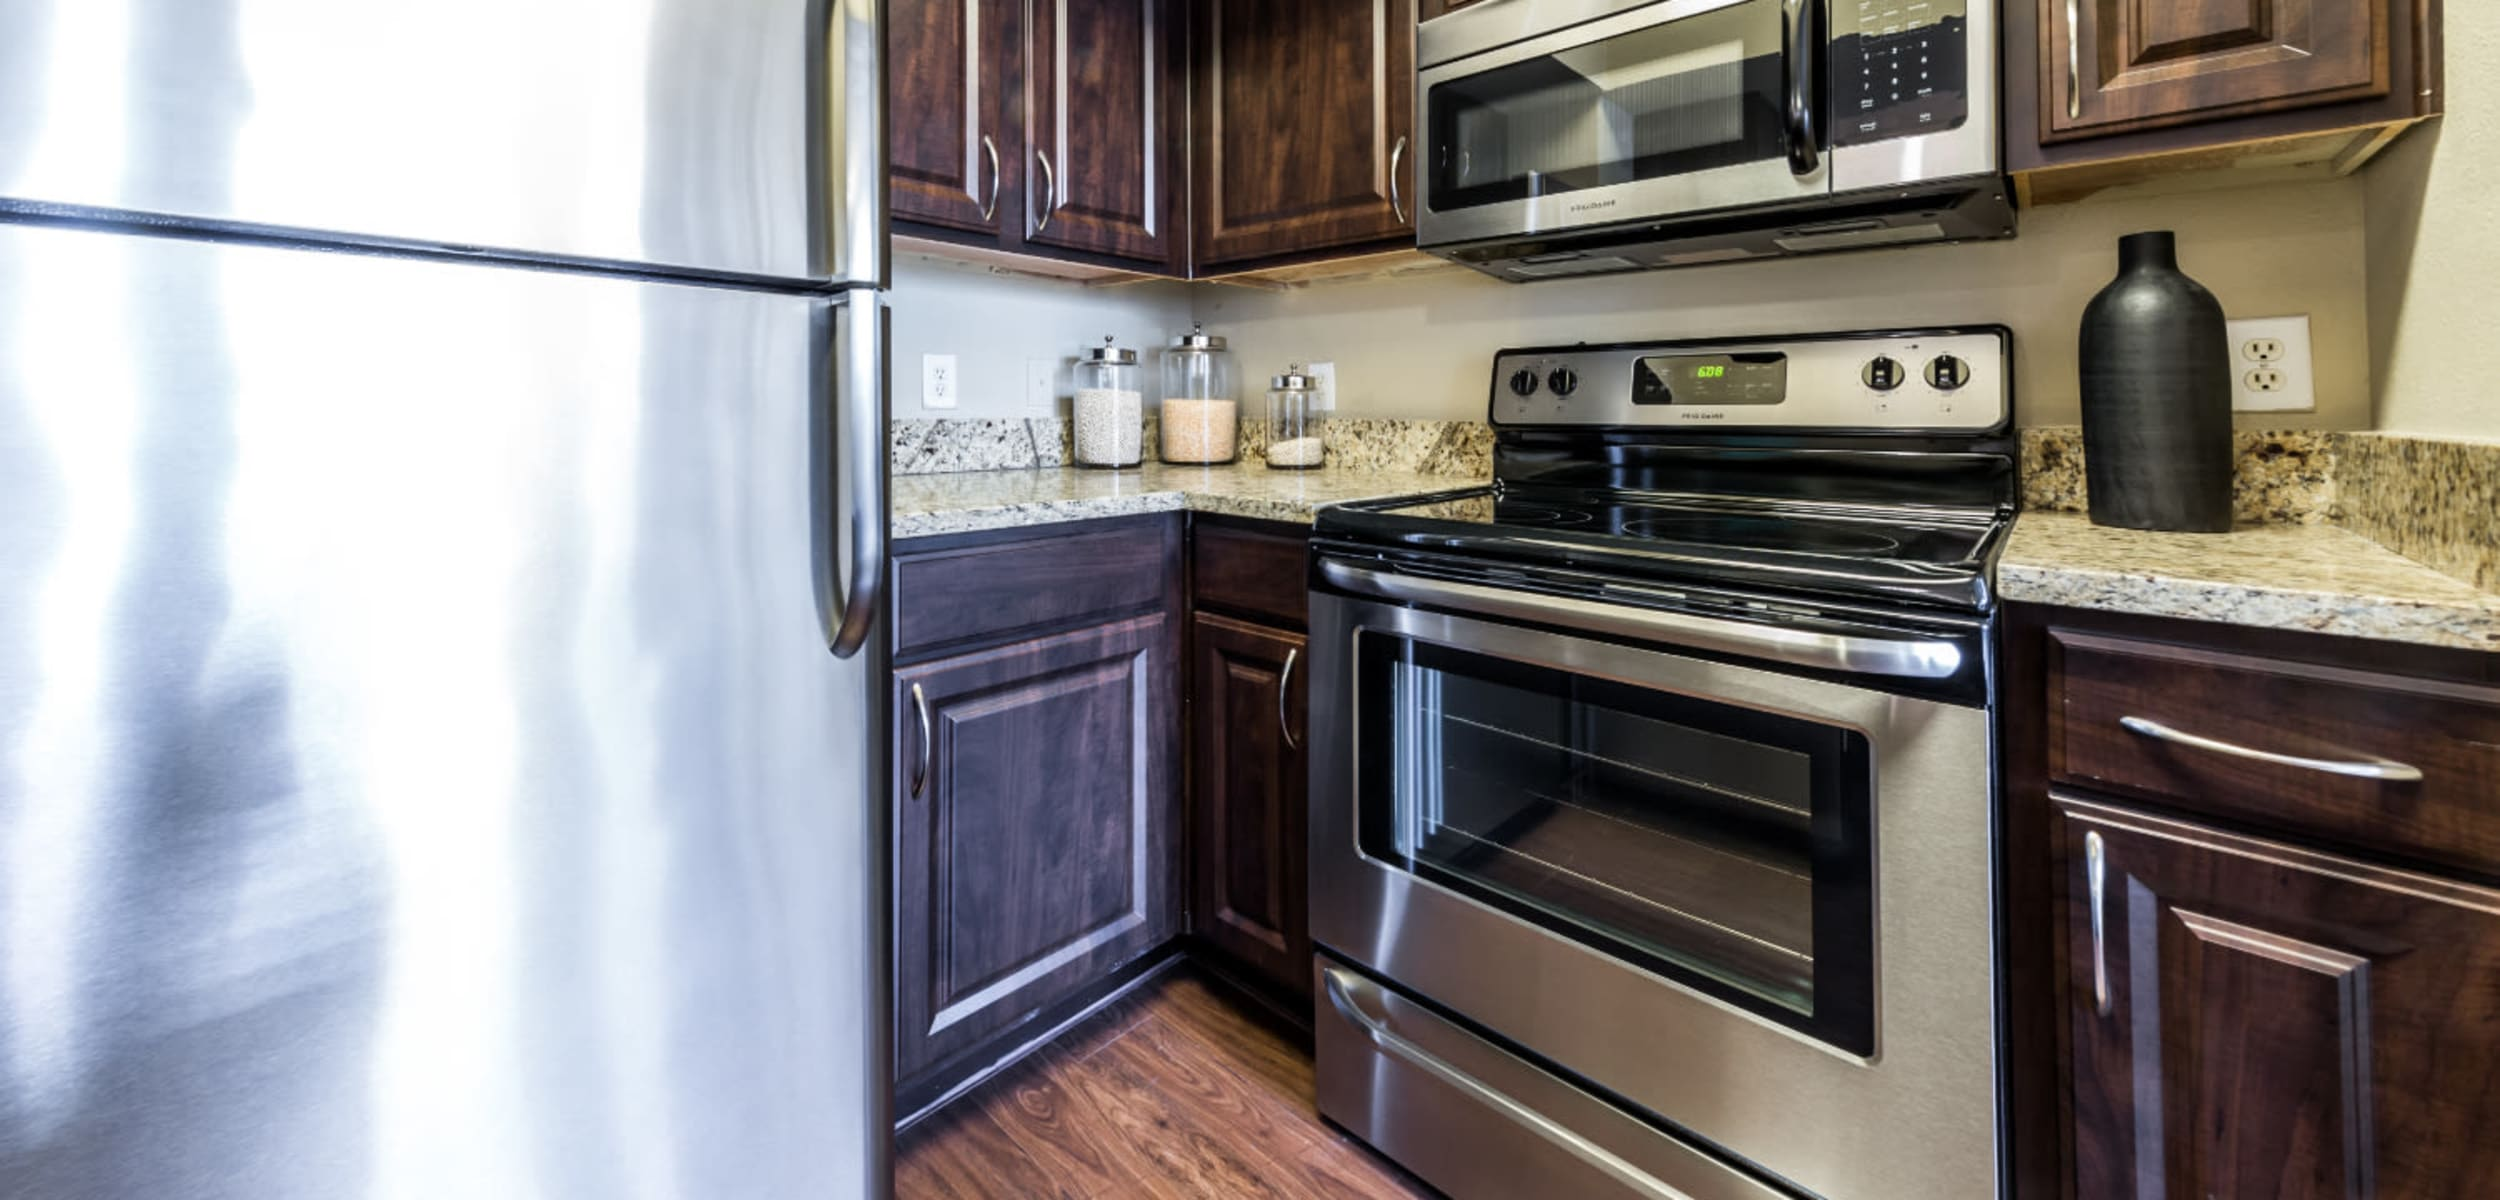 Modern kitchen with stainless steel appliances and granite counter tops at Marquis at Stonegate in Fort Worth, Texas